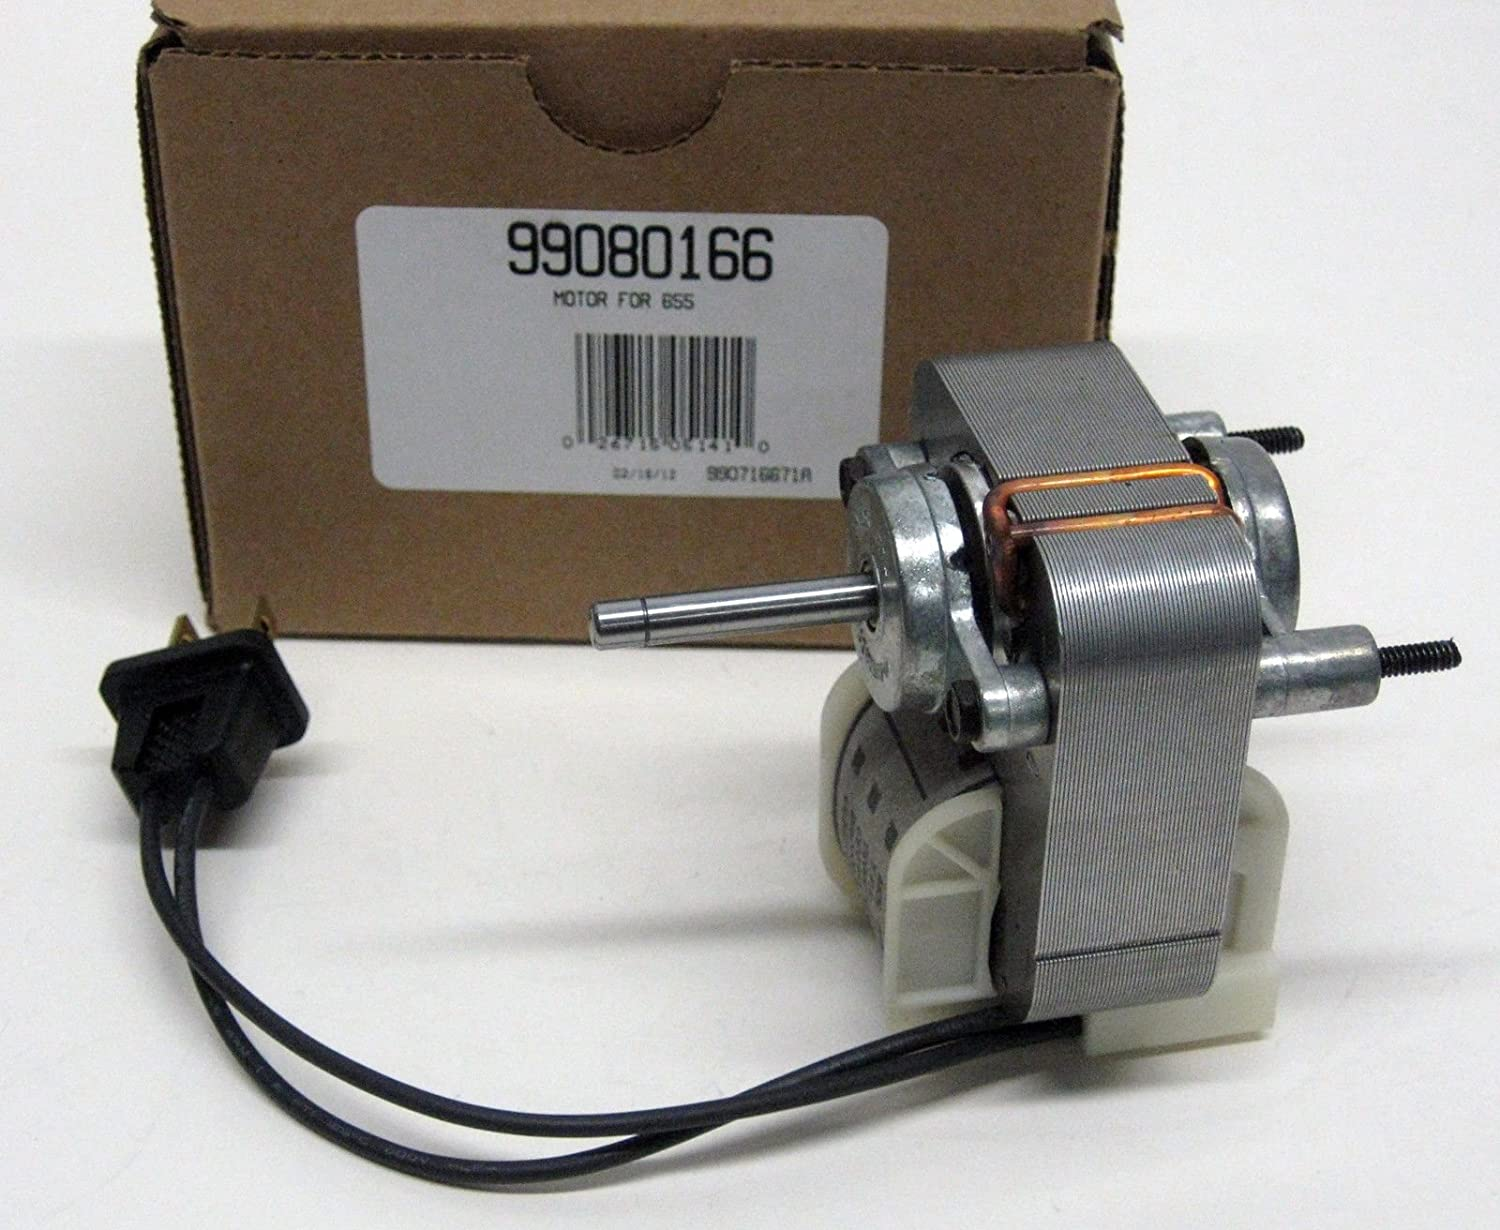 Broan Replacement Vent Fan Motor # 99080596 1.6 Amps 1700 RPM 120v for sale online